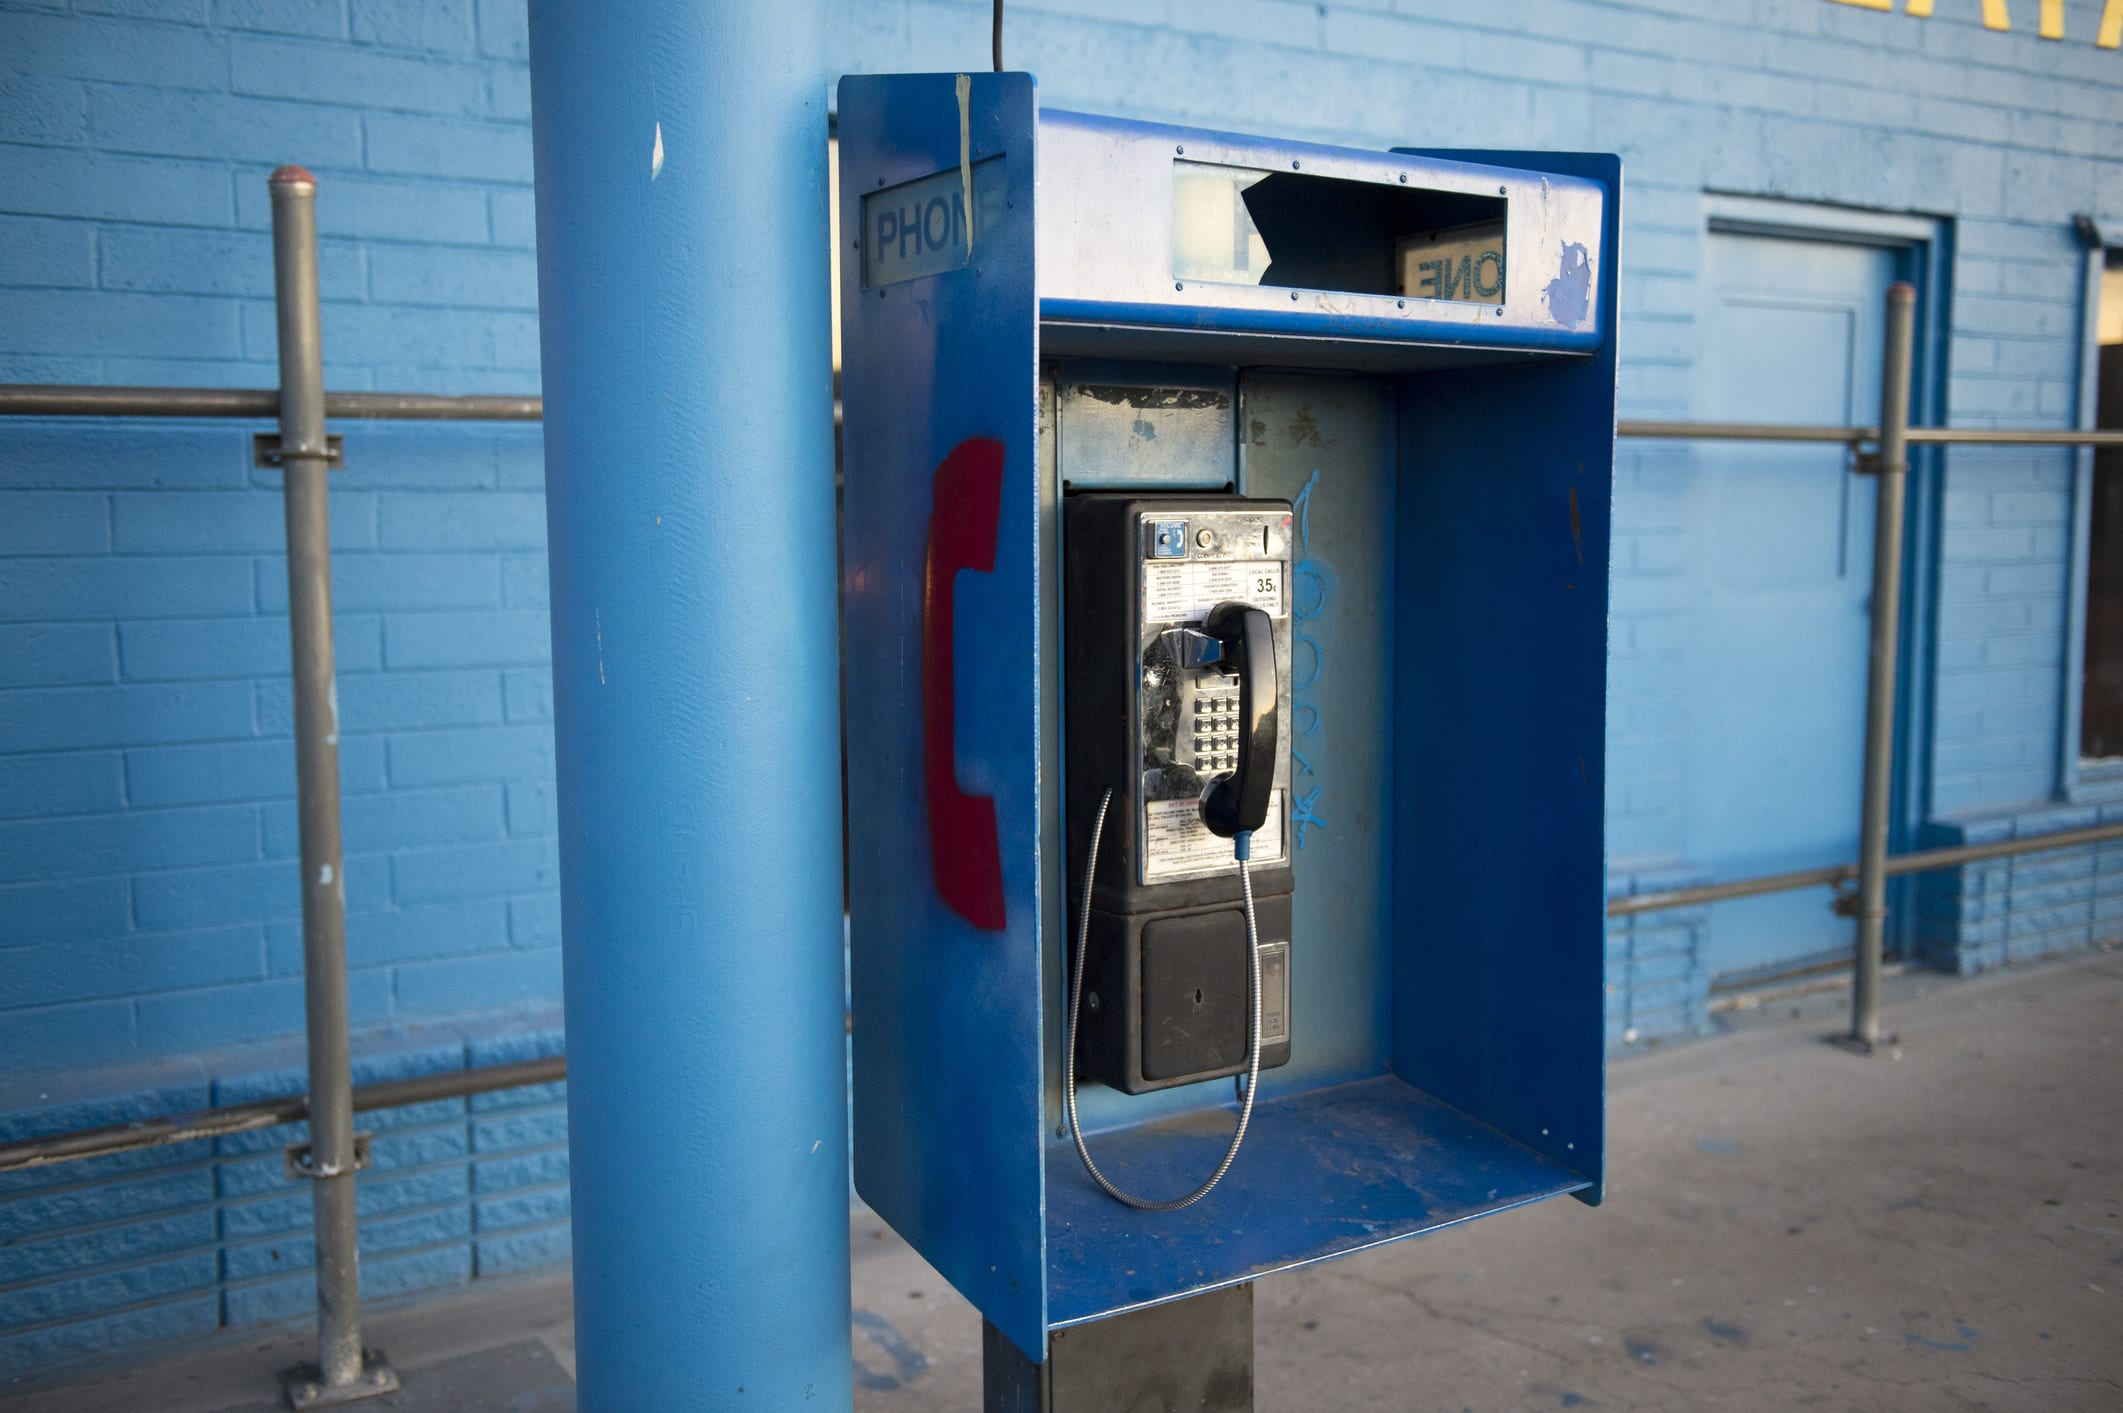 An old pay phone